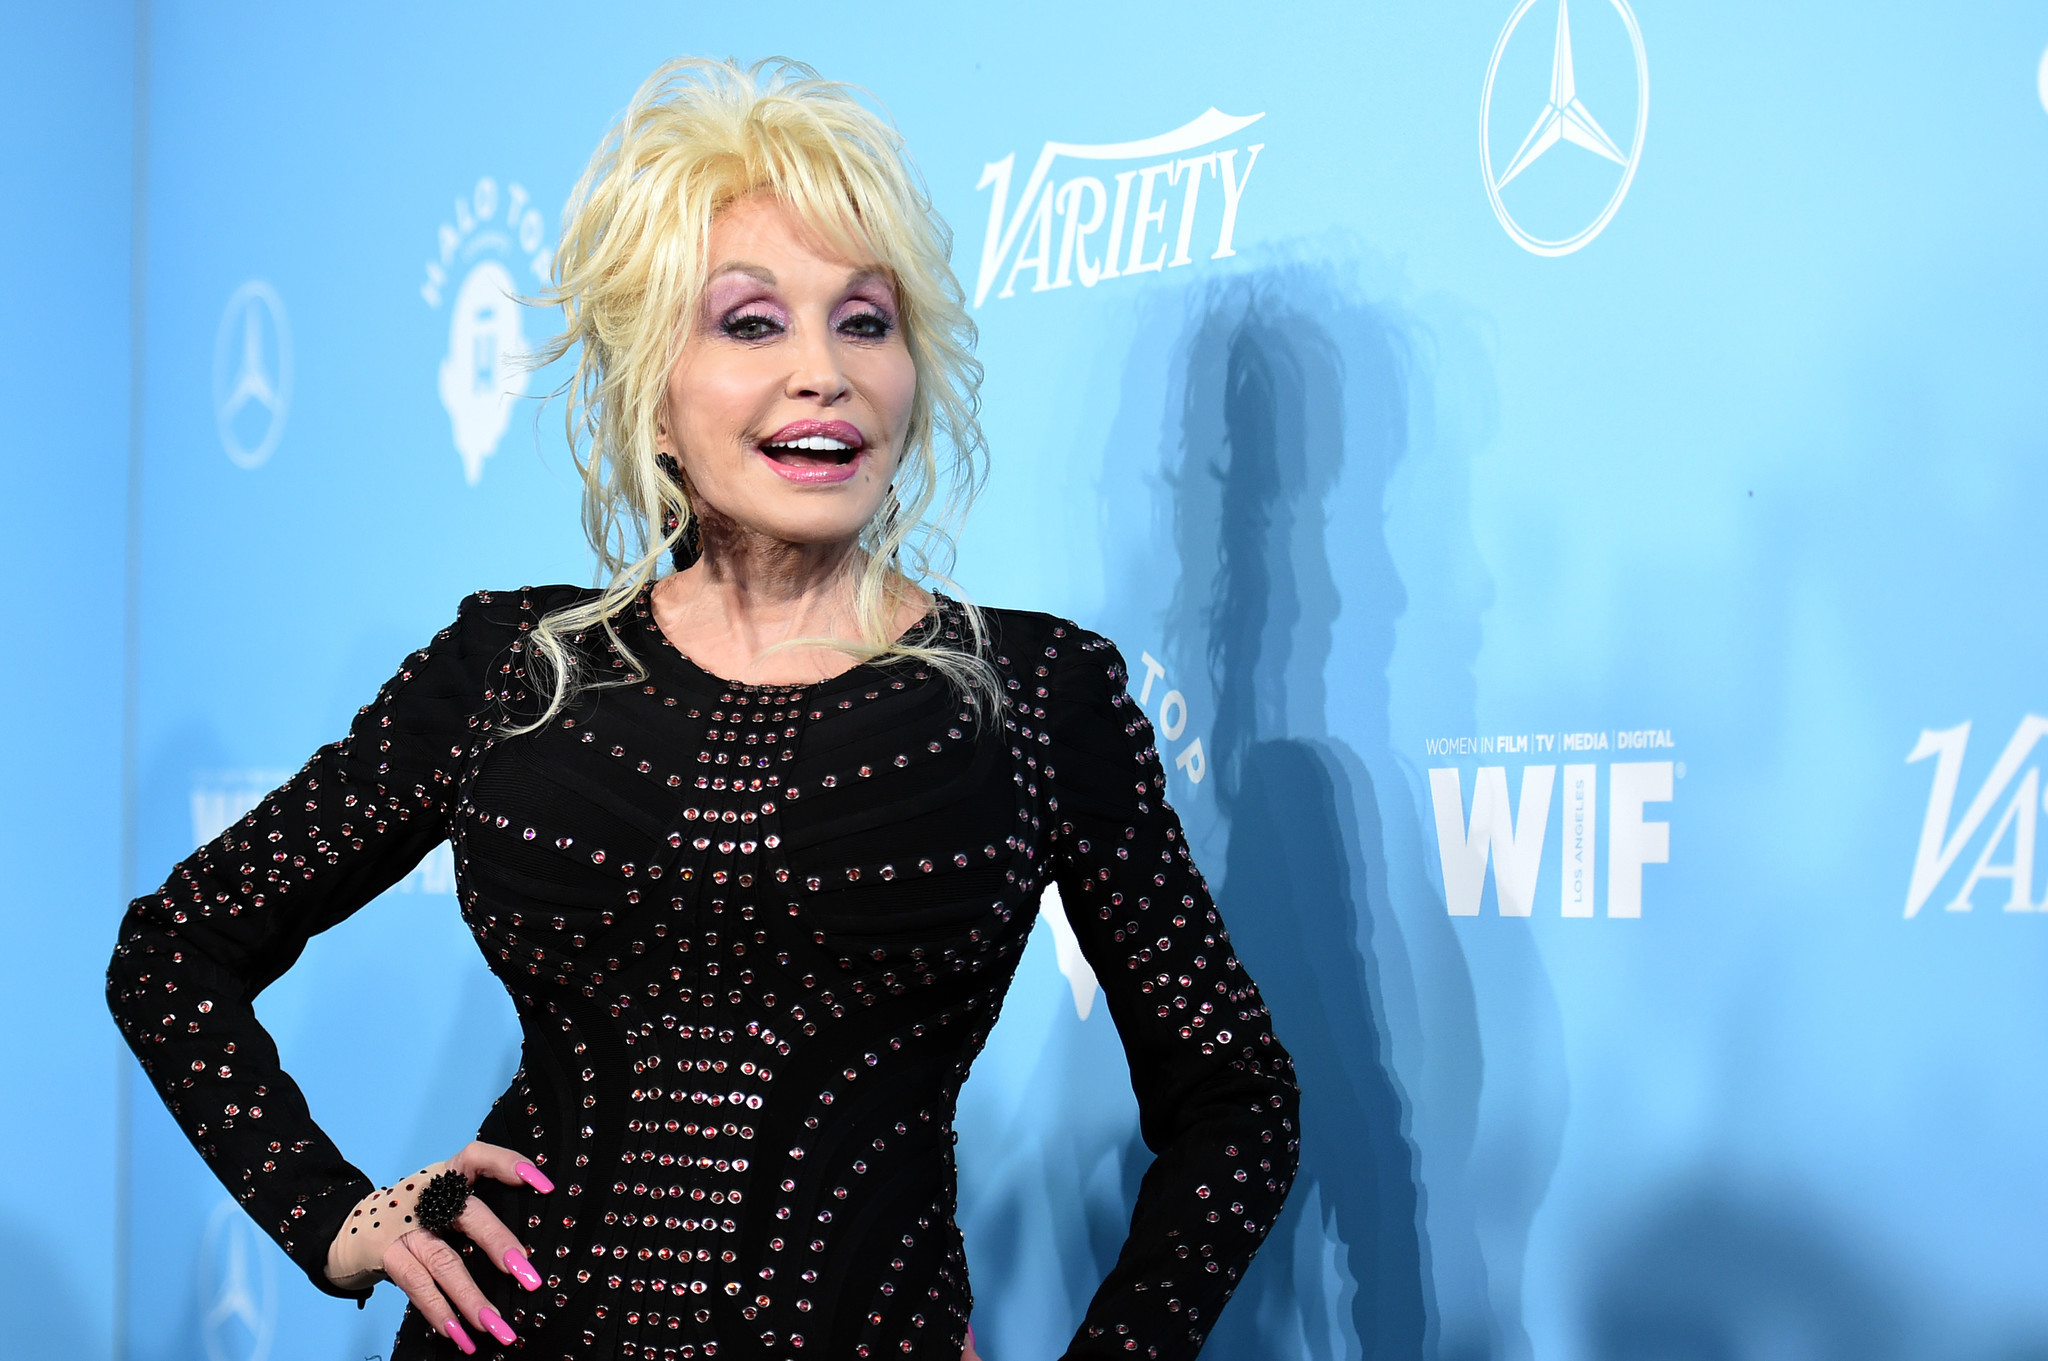 Dolly Parton attends the Variety and Women in Film event. (Richard Shotwell / Variety)